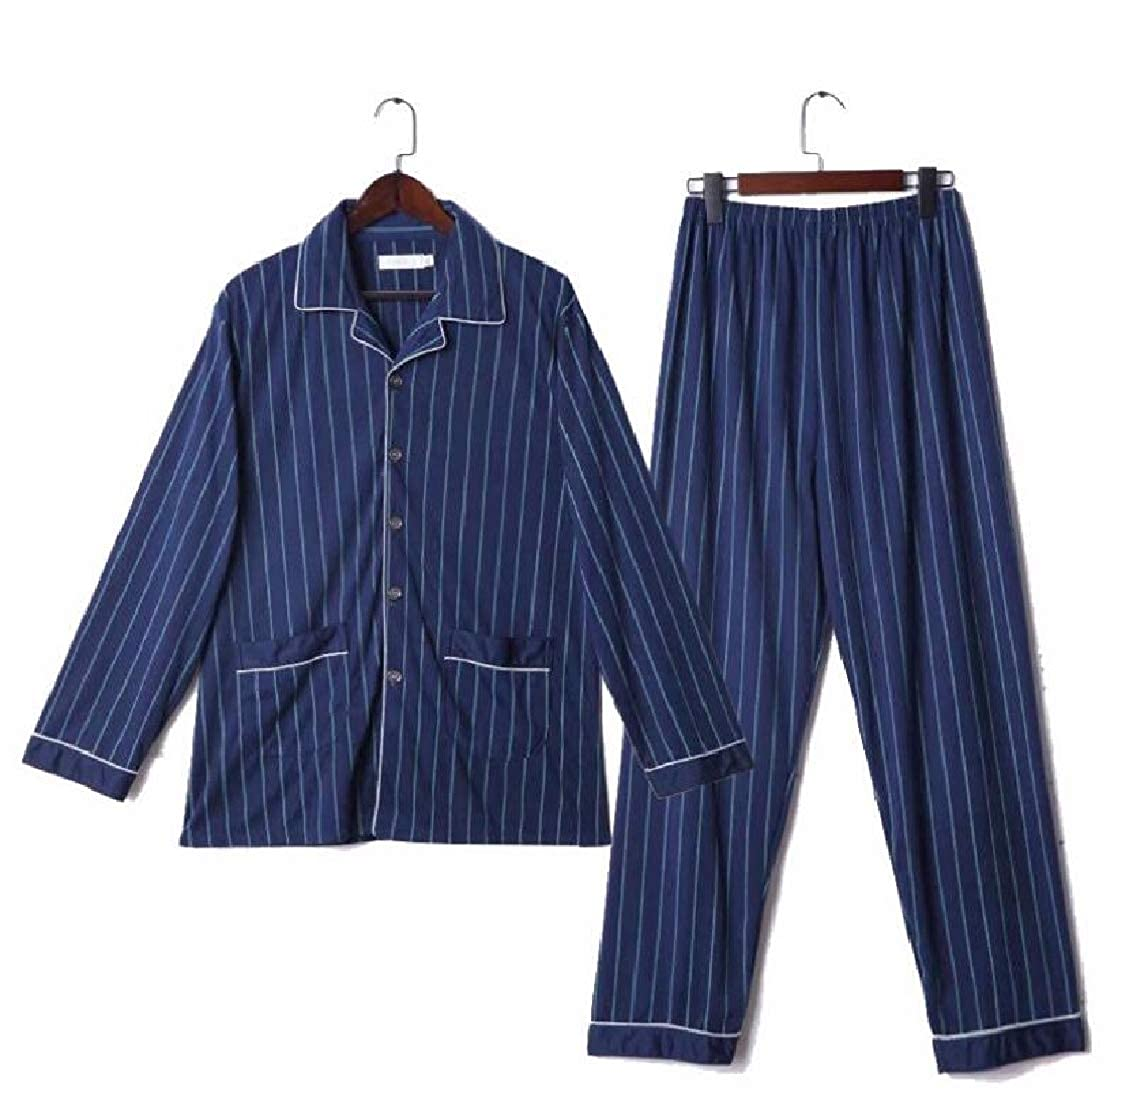 Jaycargogo Mens Homwear Pajamas Lightweight Striped Long Sleeve 2 Piece Set